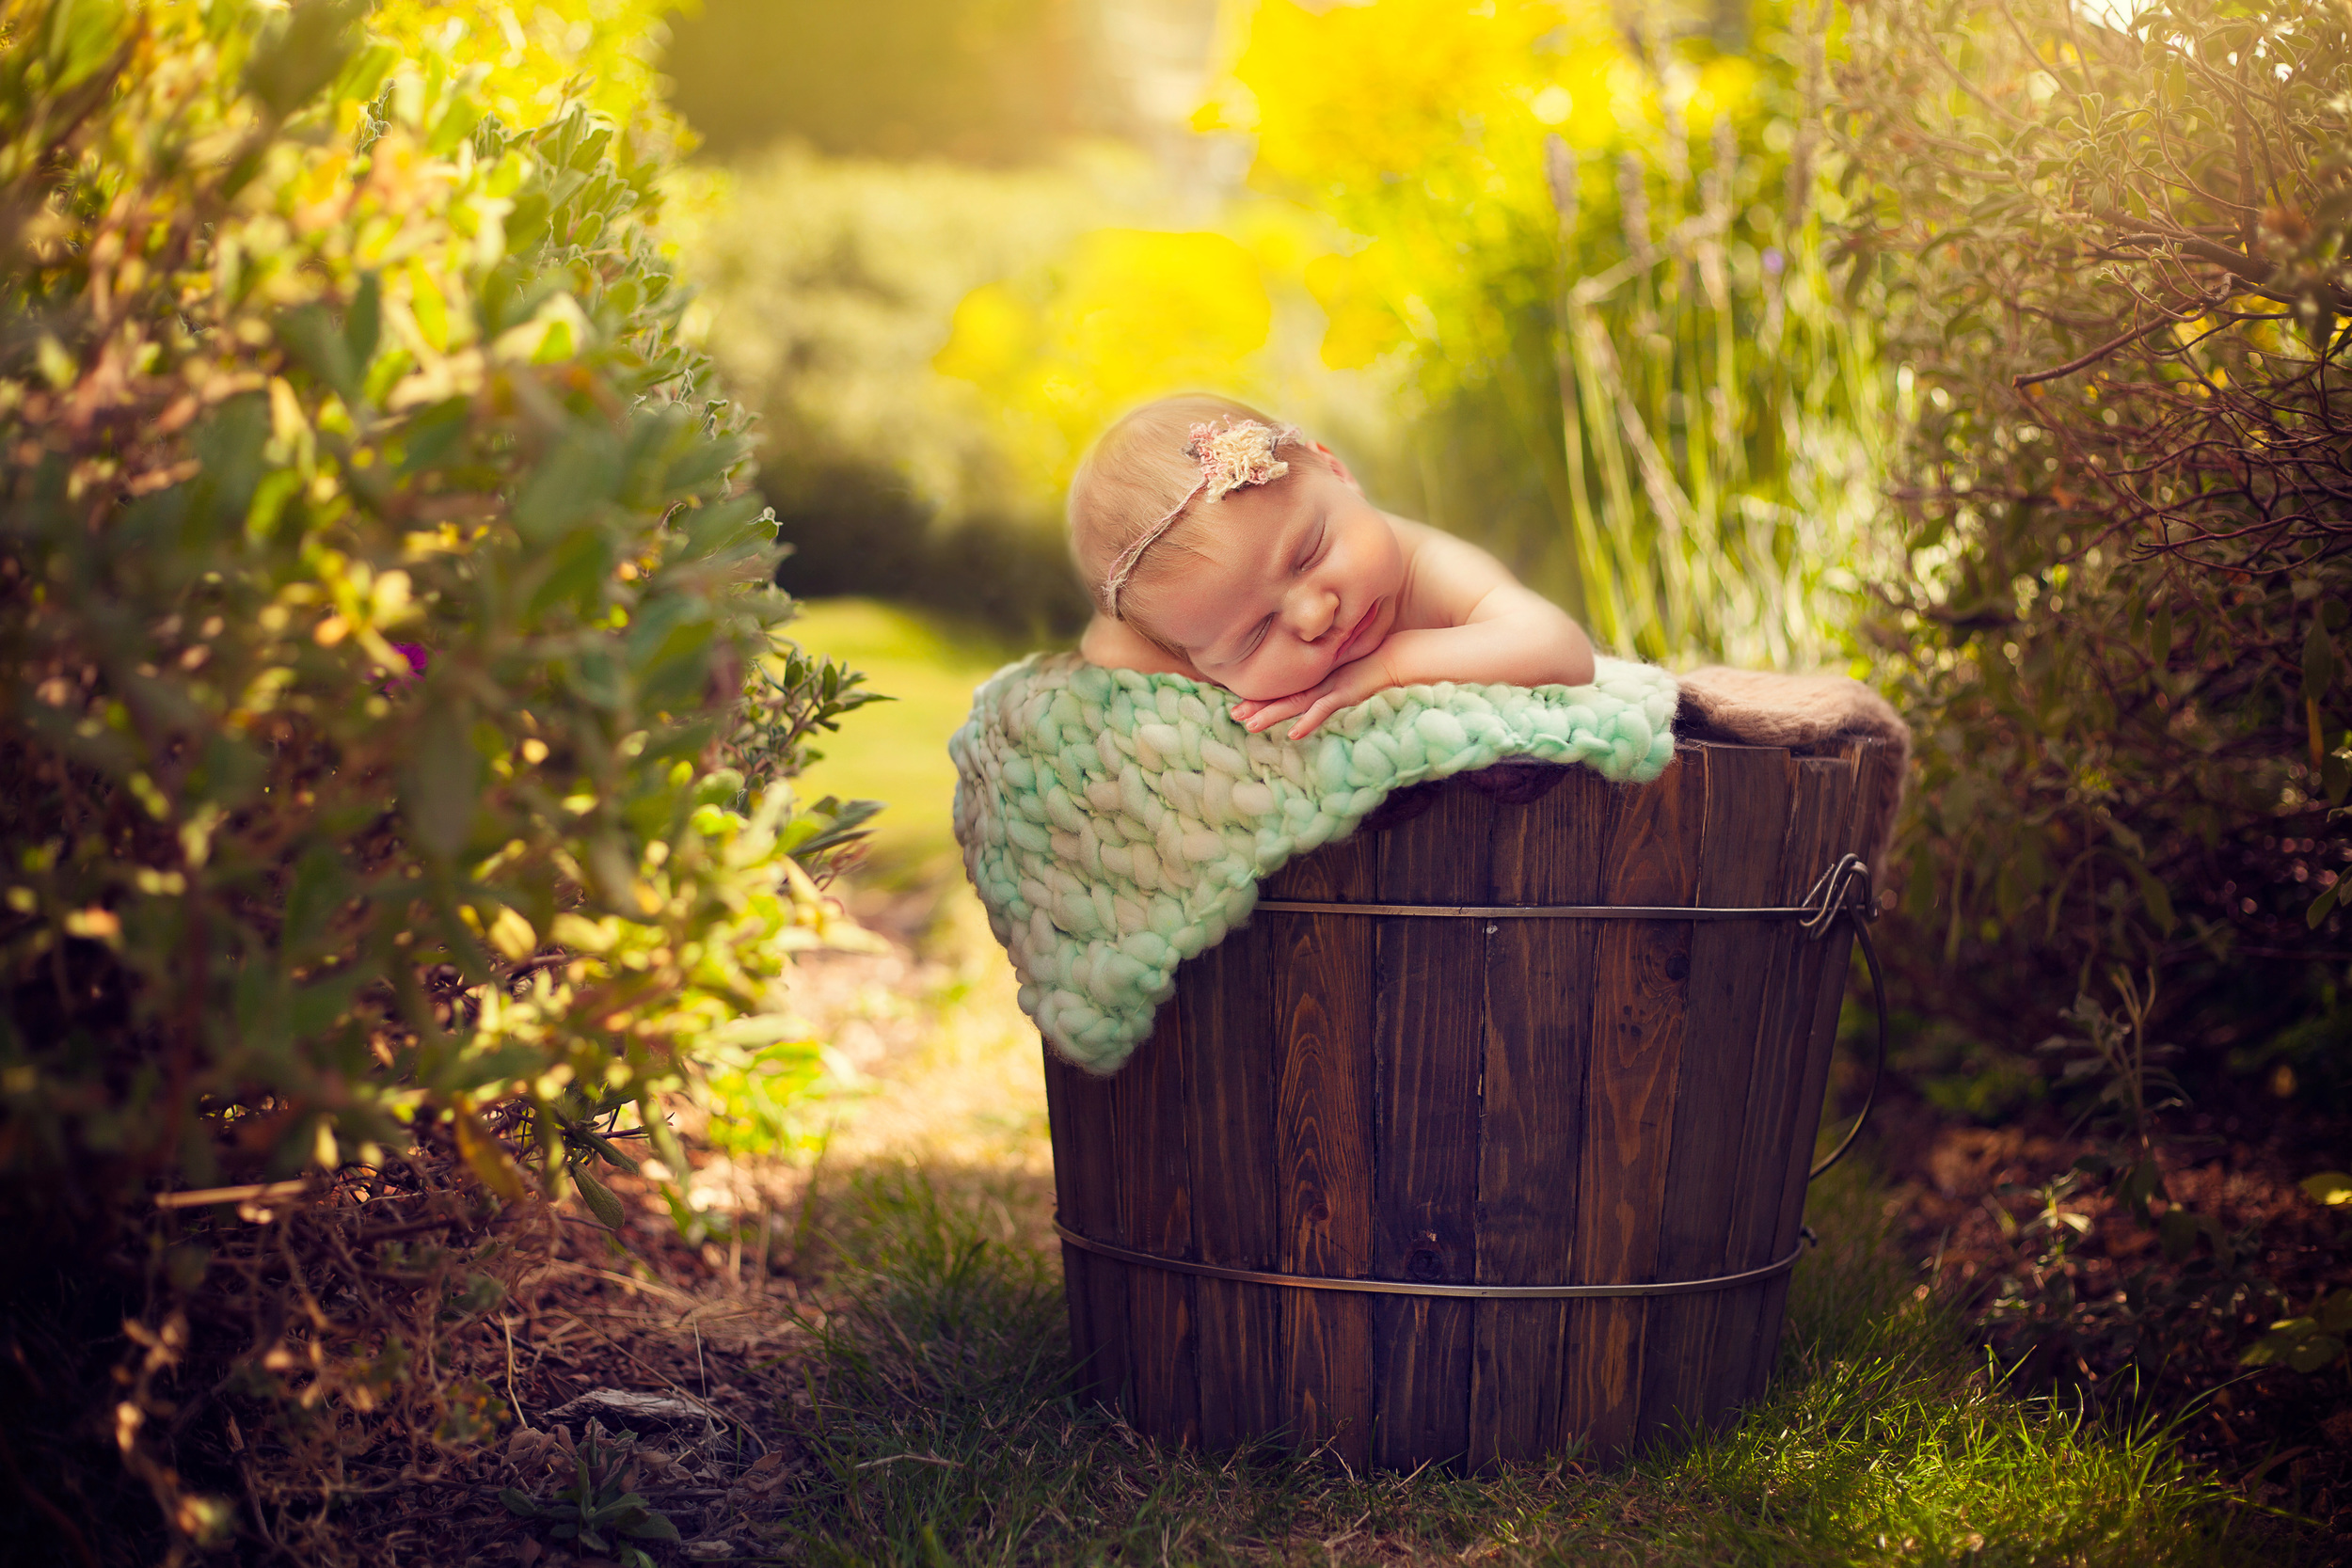 stunning photo of newborn baby sleeping in a wooden bucket surrounded by garden flowers